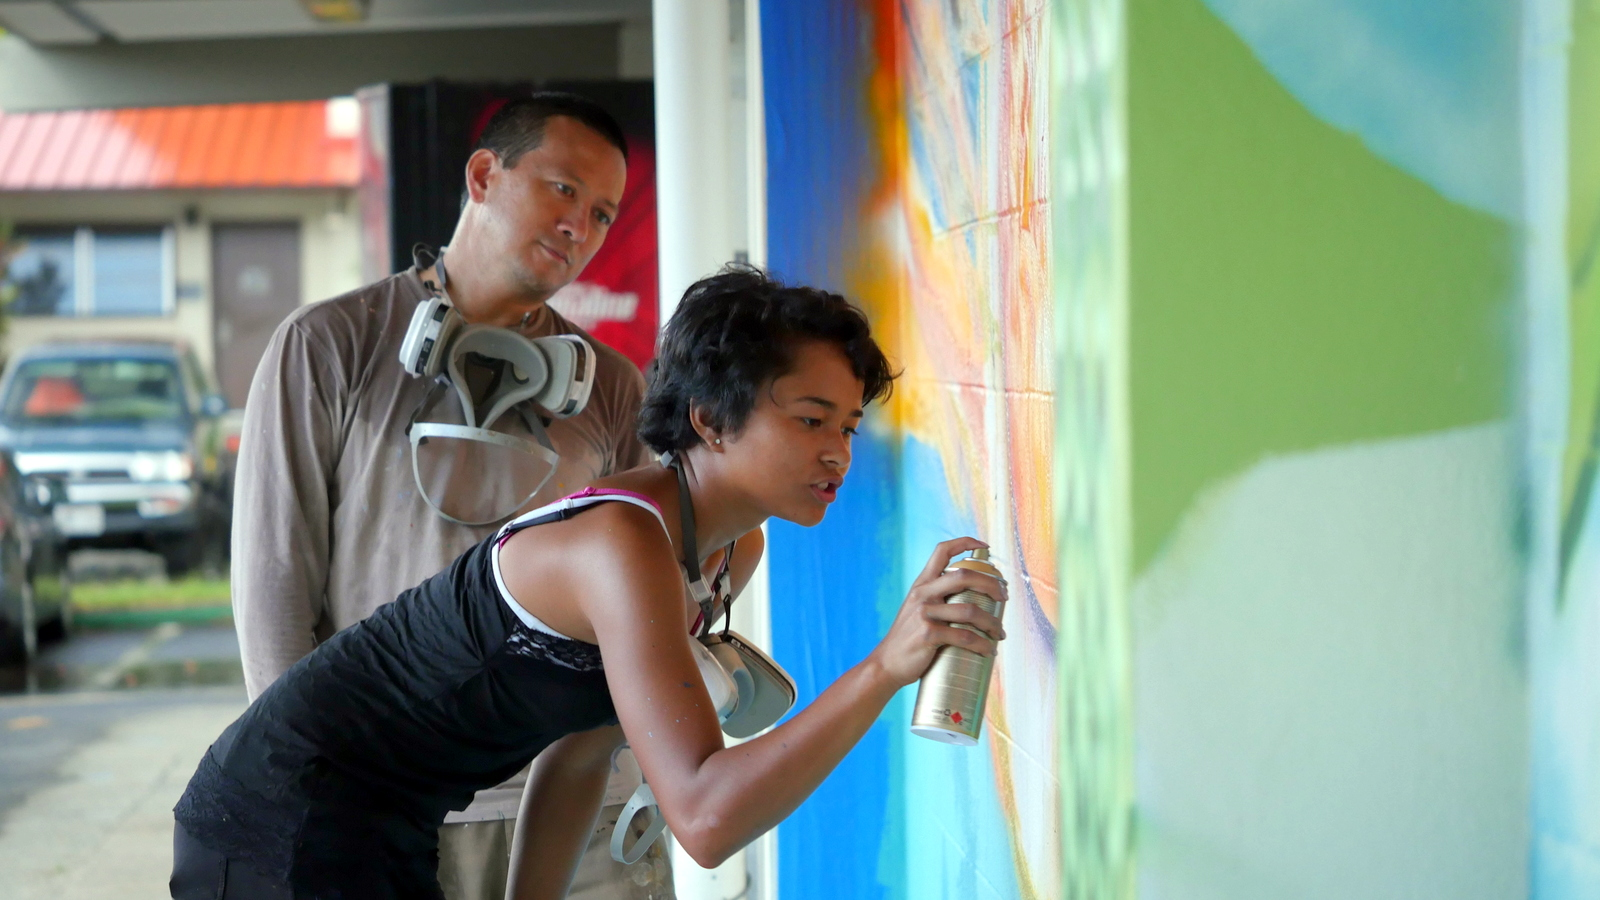 Estria Miyashiro, founder of the statewide Mele Mural project, mentors a student in painting skills.. The student is applying spray paint to the mural.